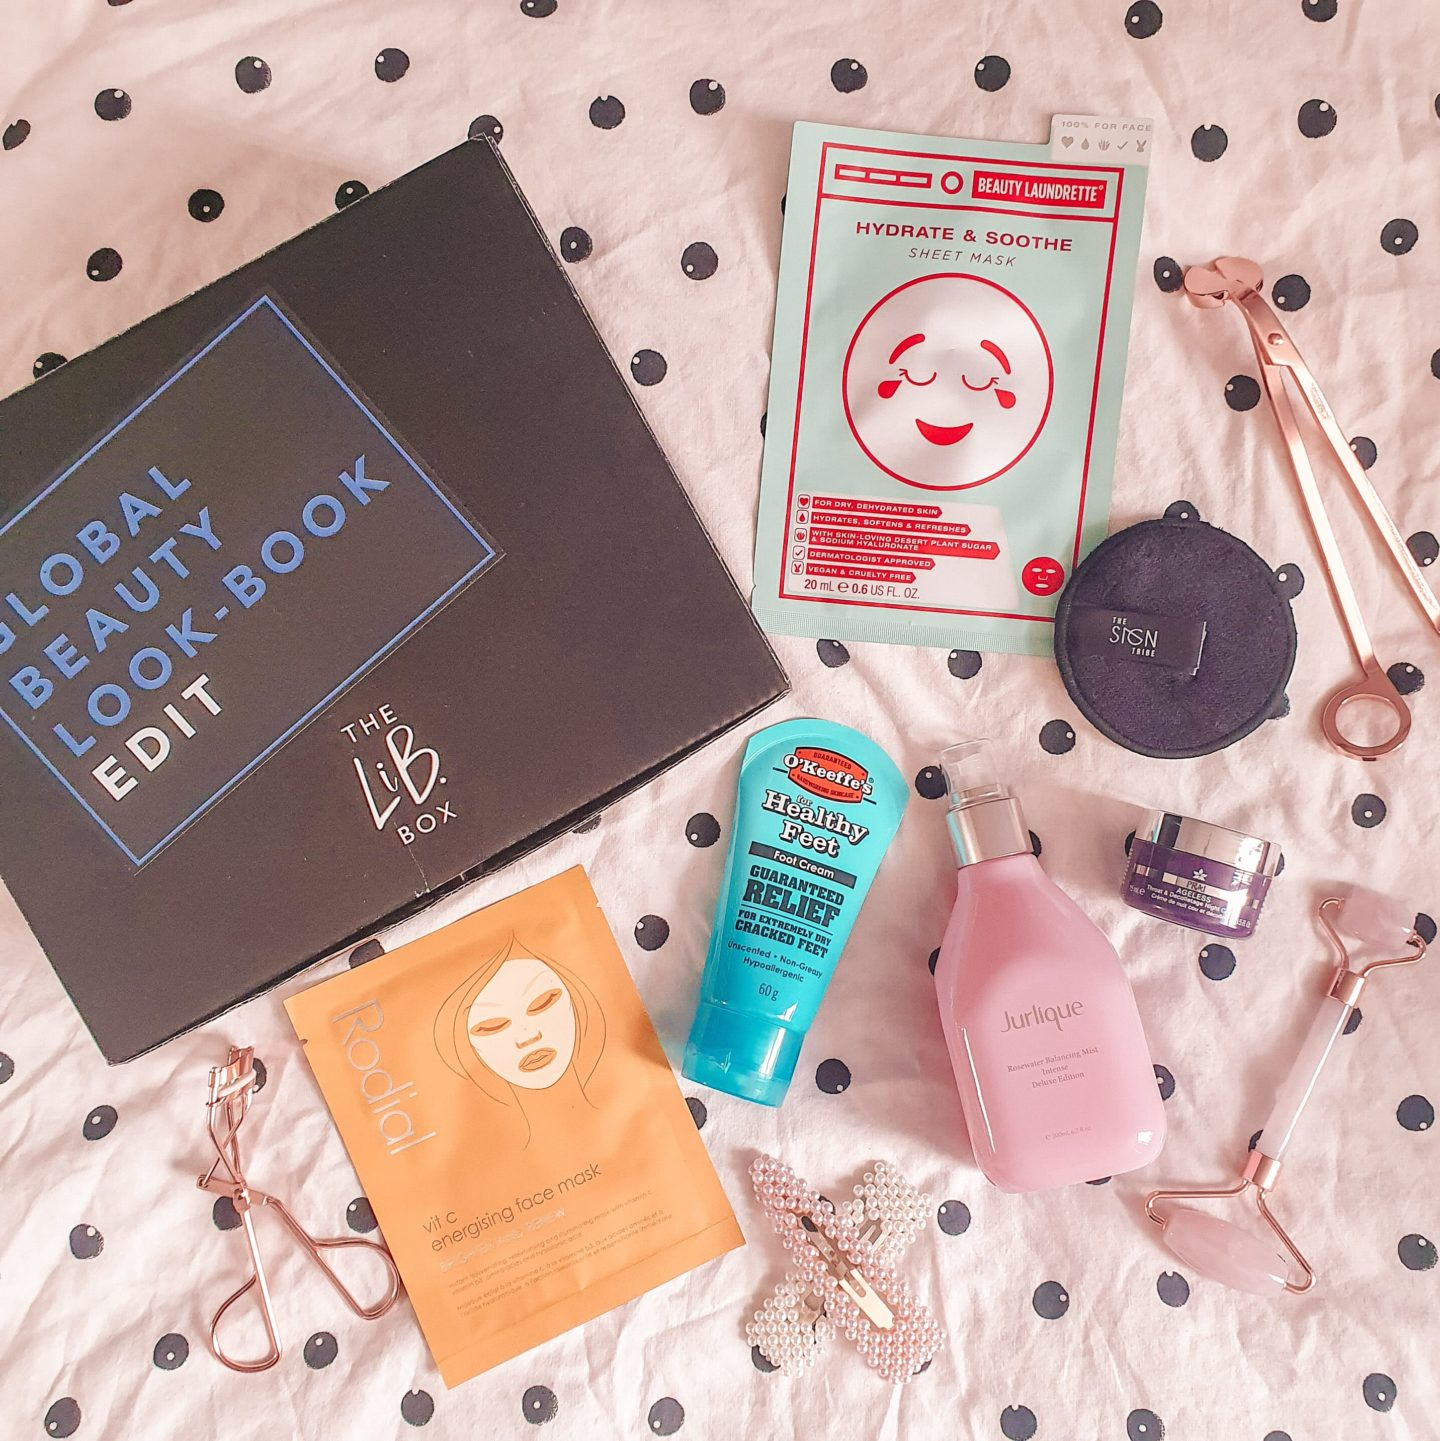 Latest in Beauty Global Beauty Look-book May 2020 Edit